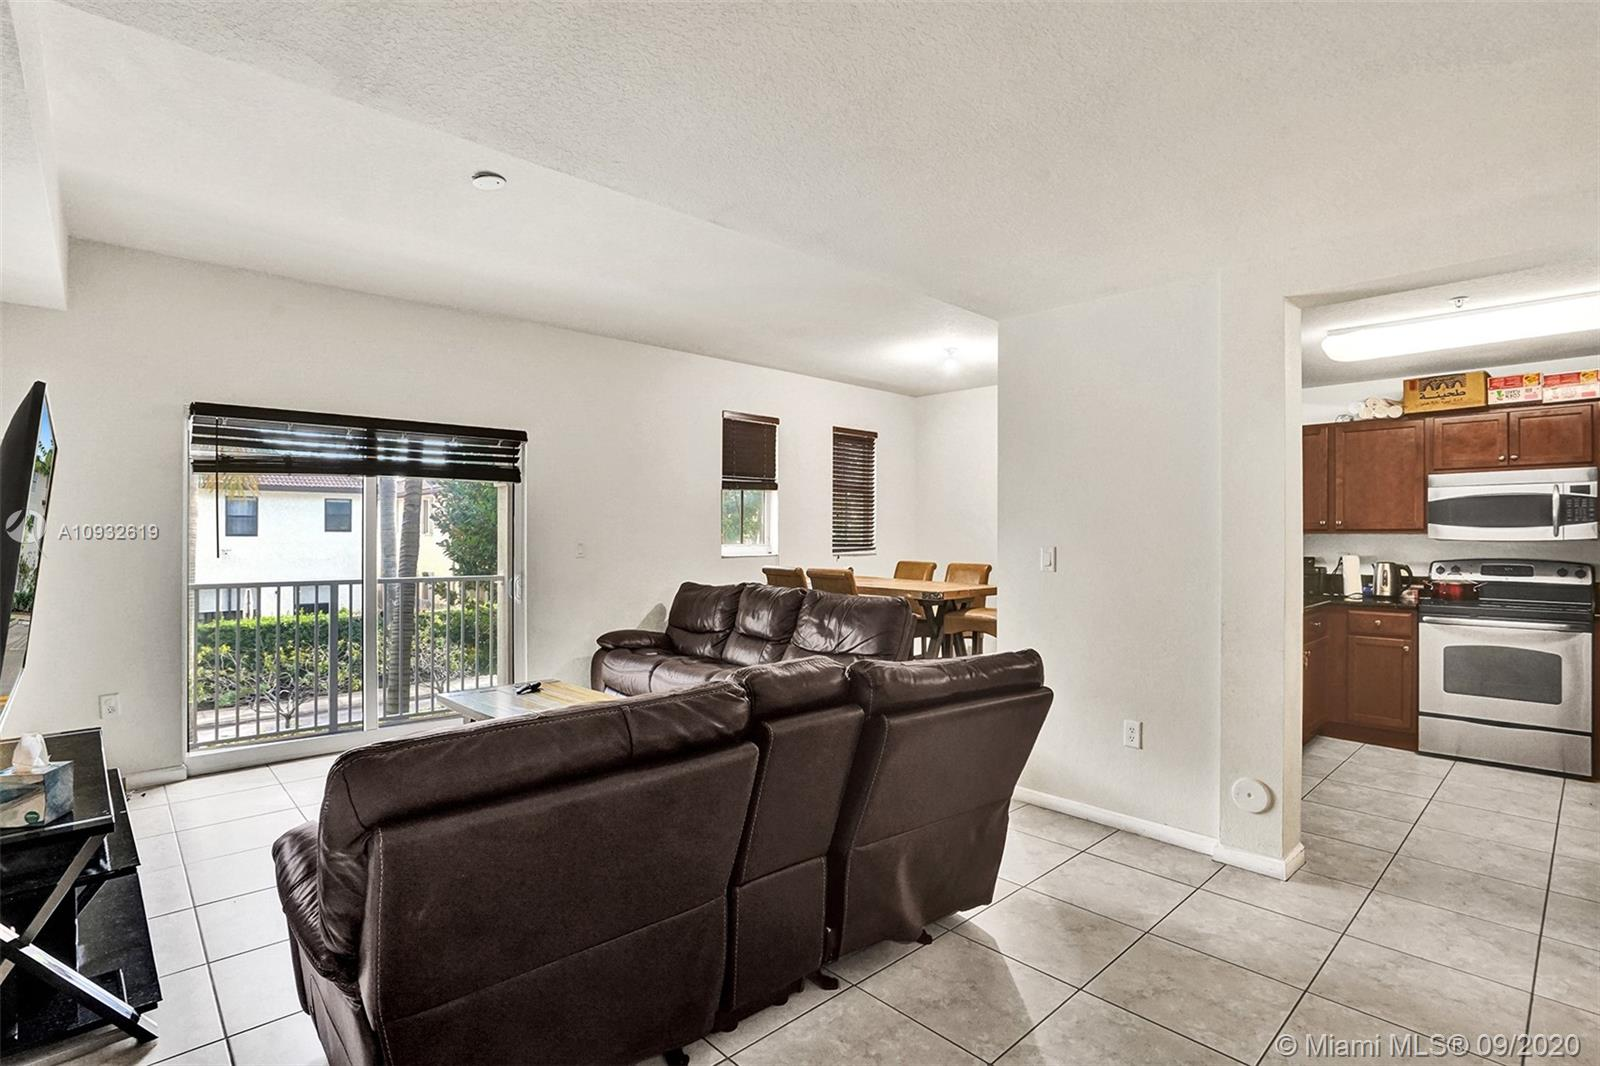 11501 NW 89th St #208 For Sale A10932619, FL